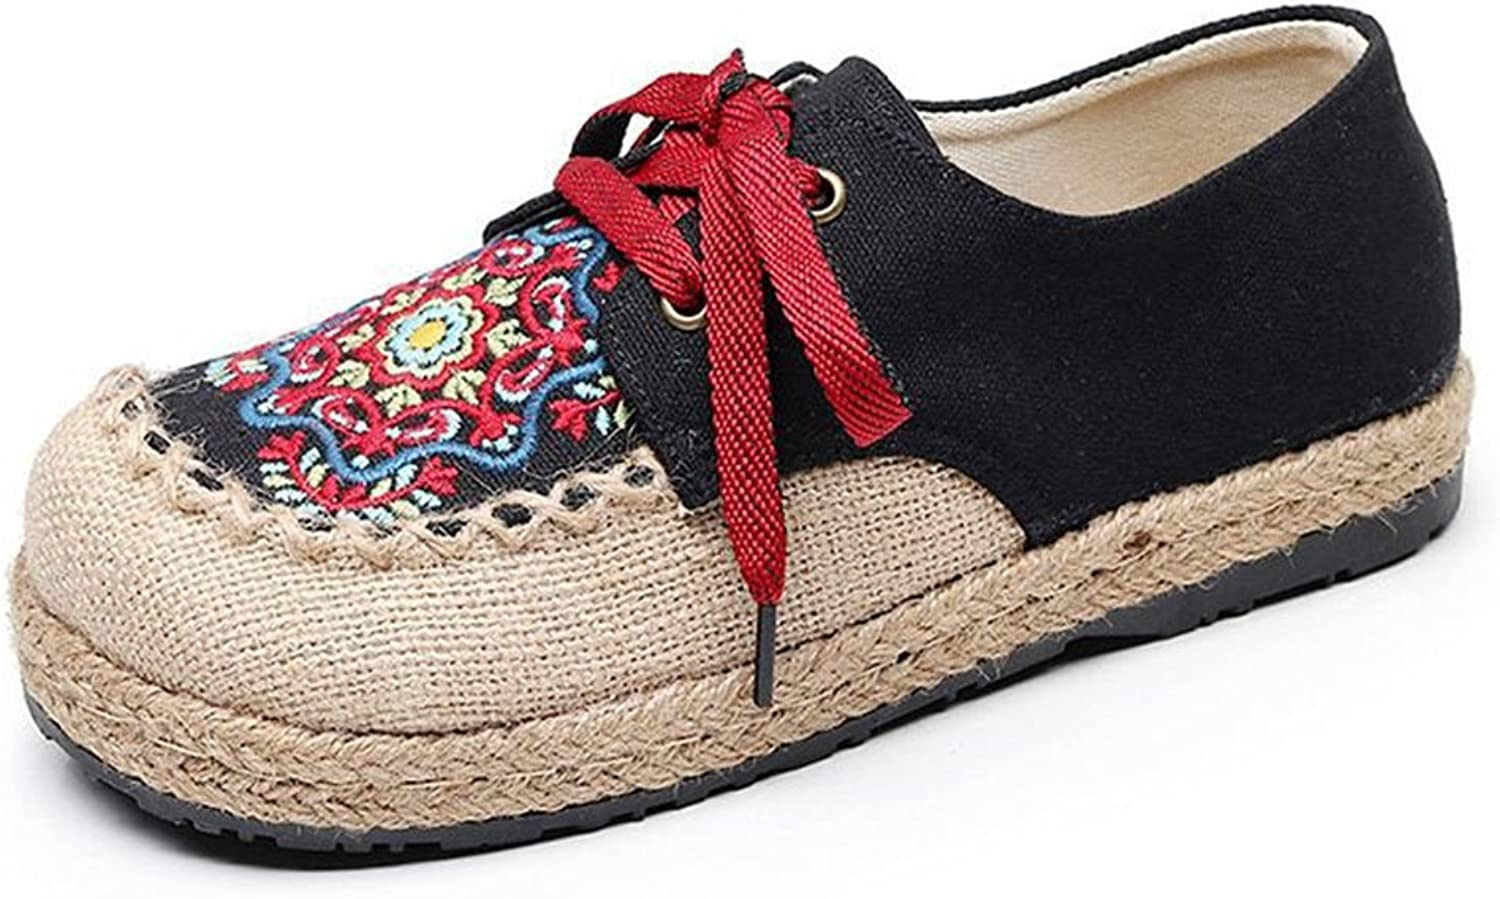 Super frist Palafrugell Linen Flats, Soft Leather Innersole Cushion, Authentic Espadrilles Hand Made in Spain